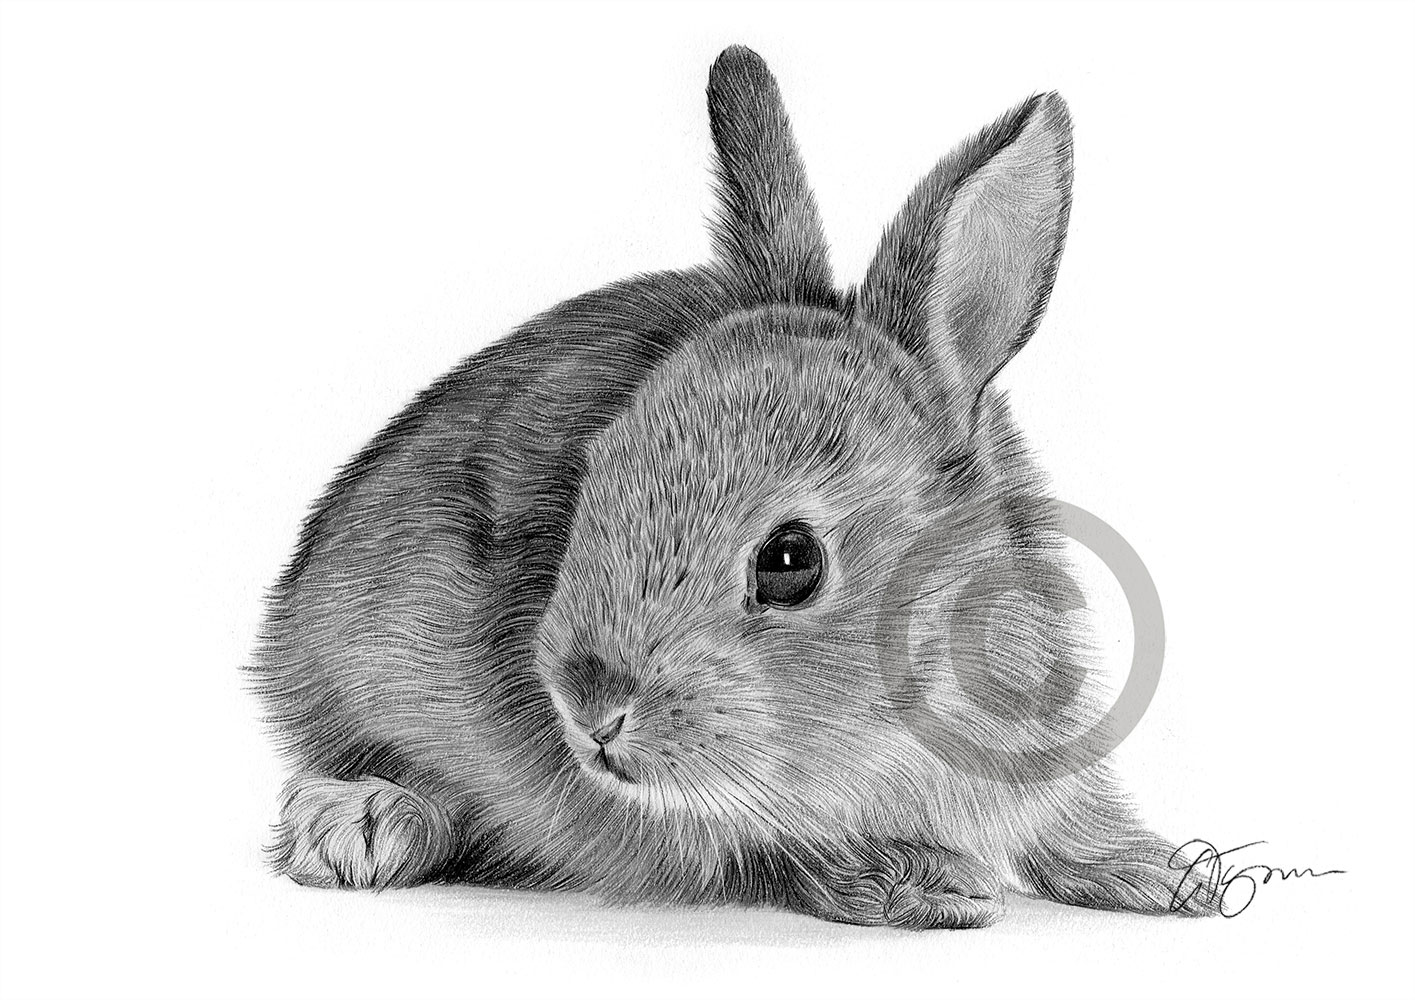 Bunny rabbit pencil drawing by artist Gary Tymon